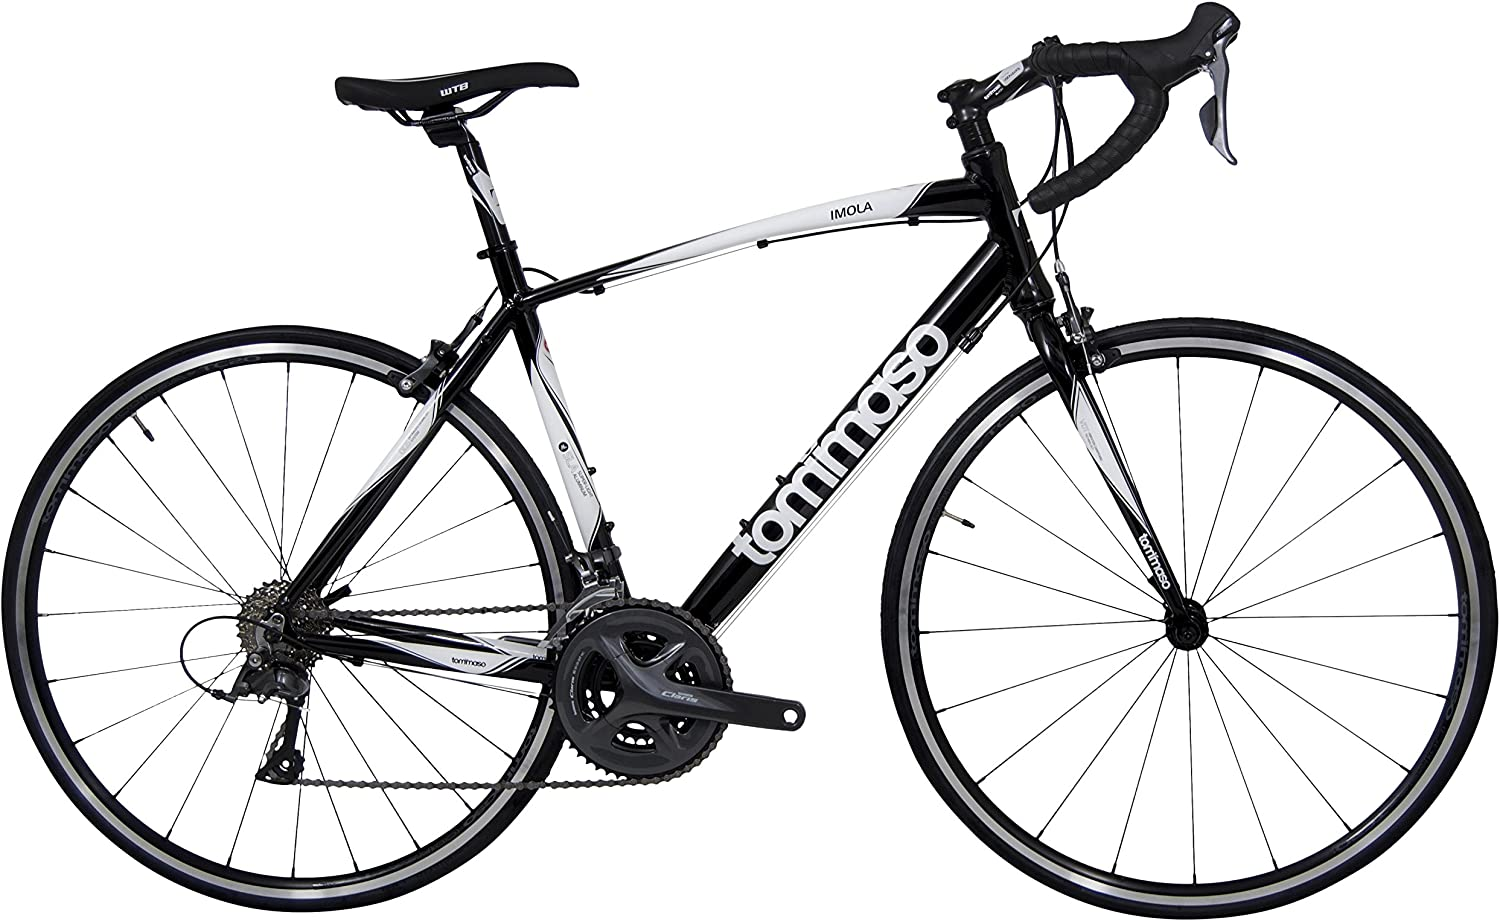 Tommaso Imola Endurance Aluminum Road Bike, Shimano Claris R2000, 24 Speeds, Black, White, Burnt Orange